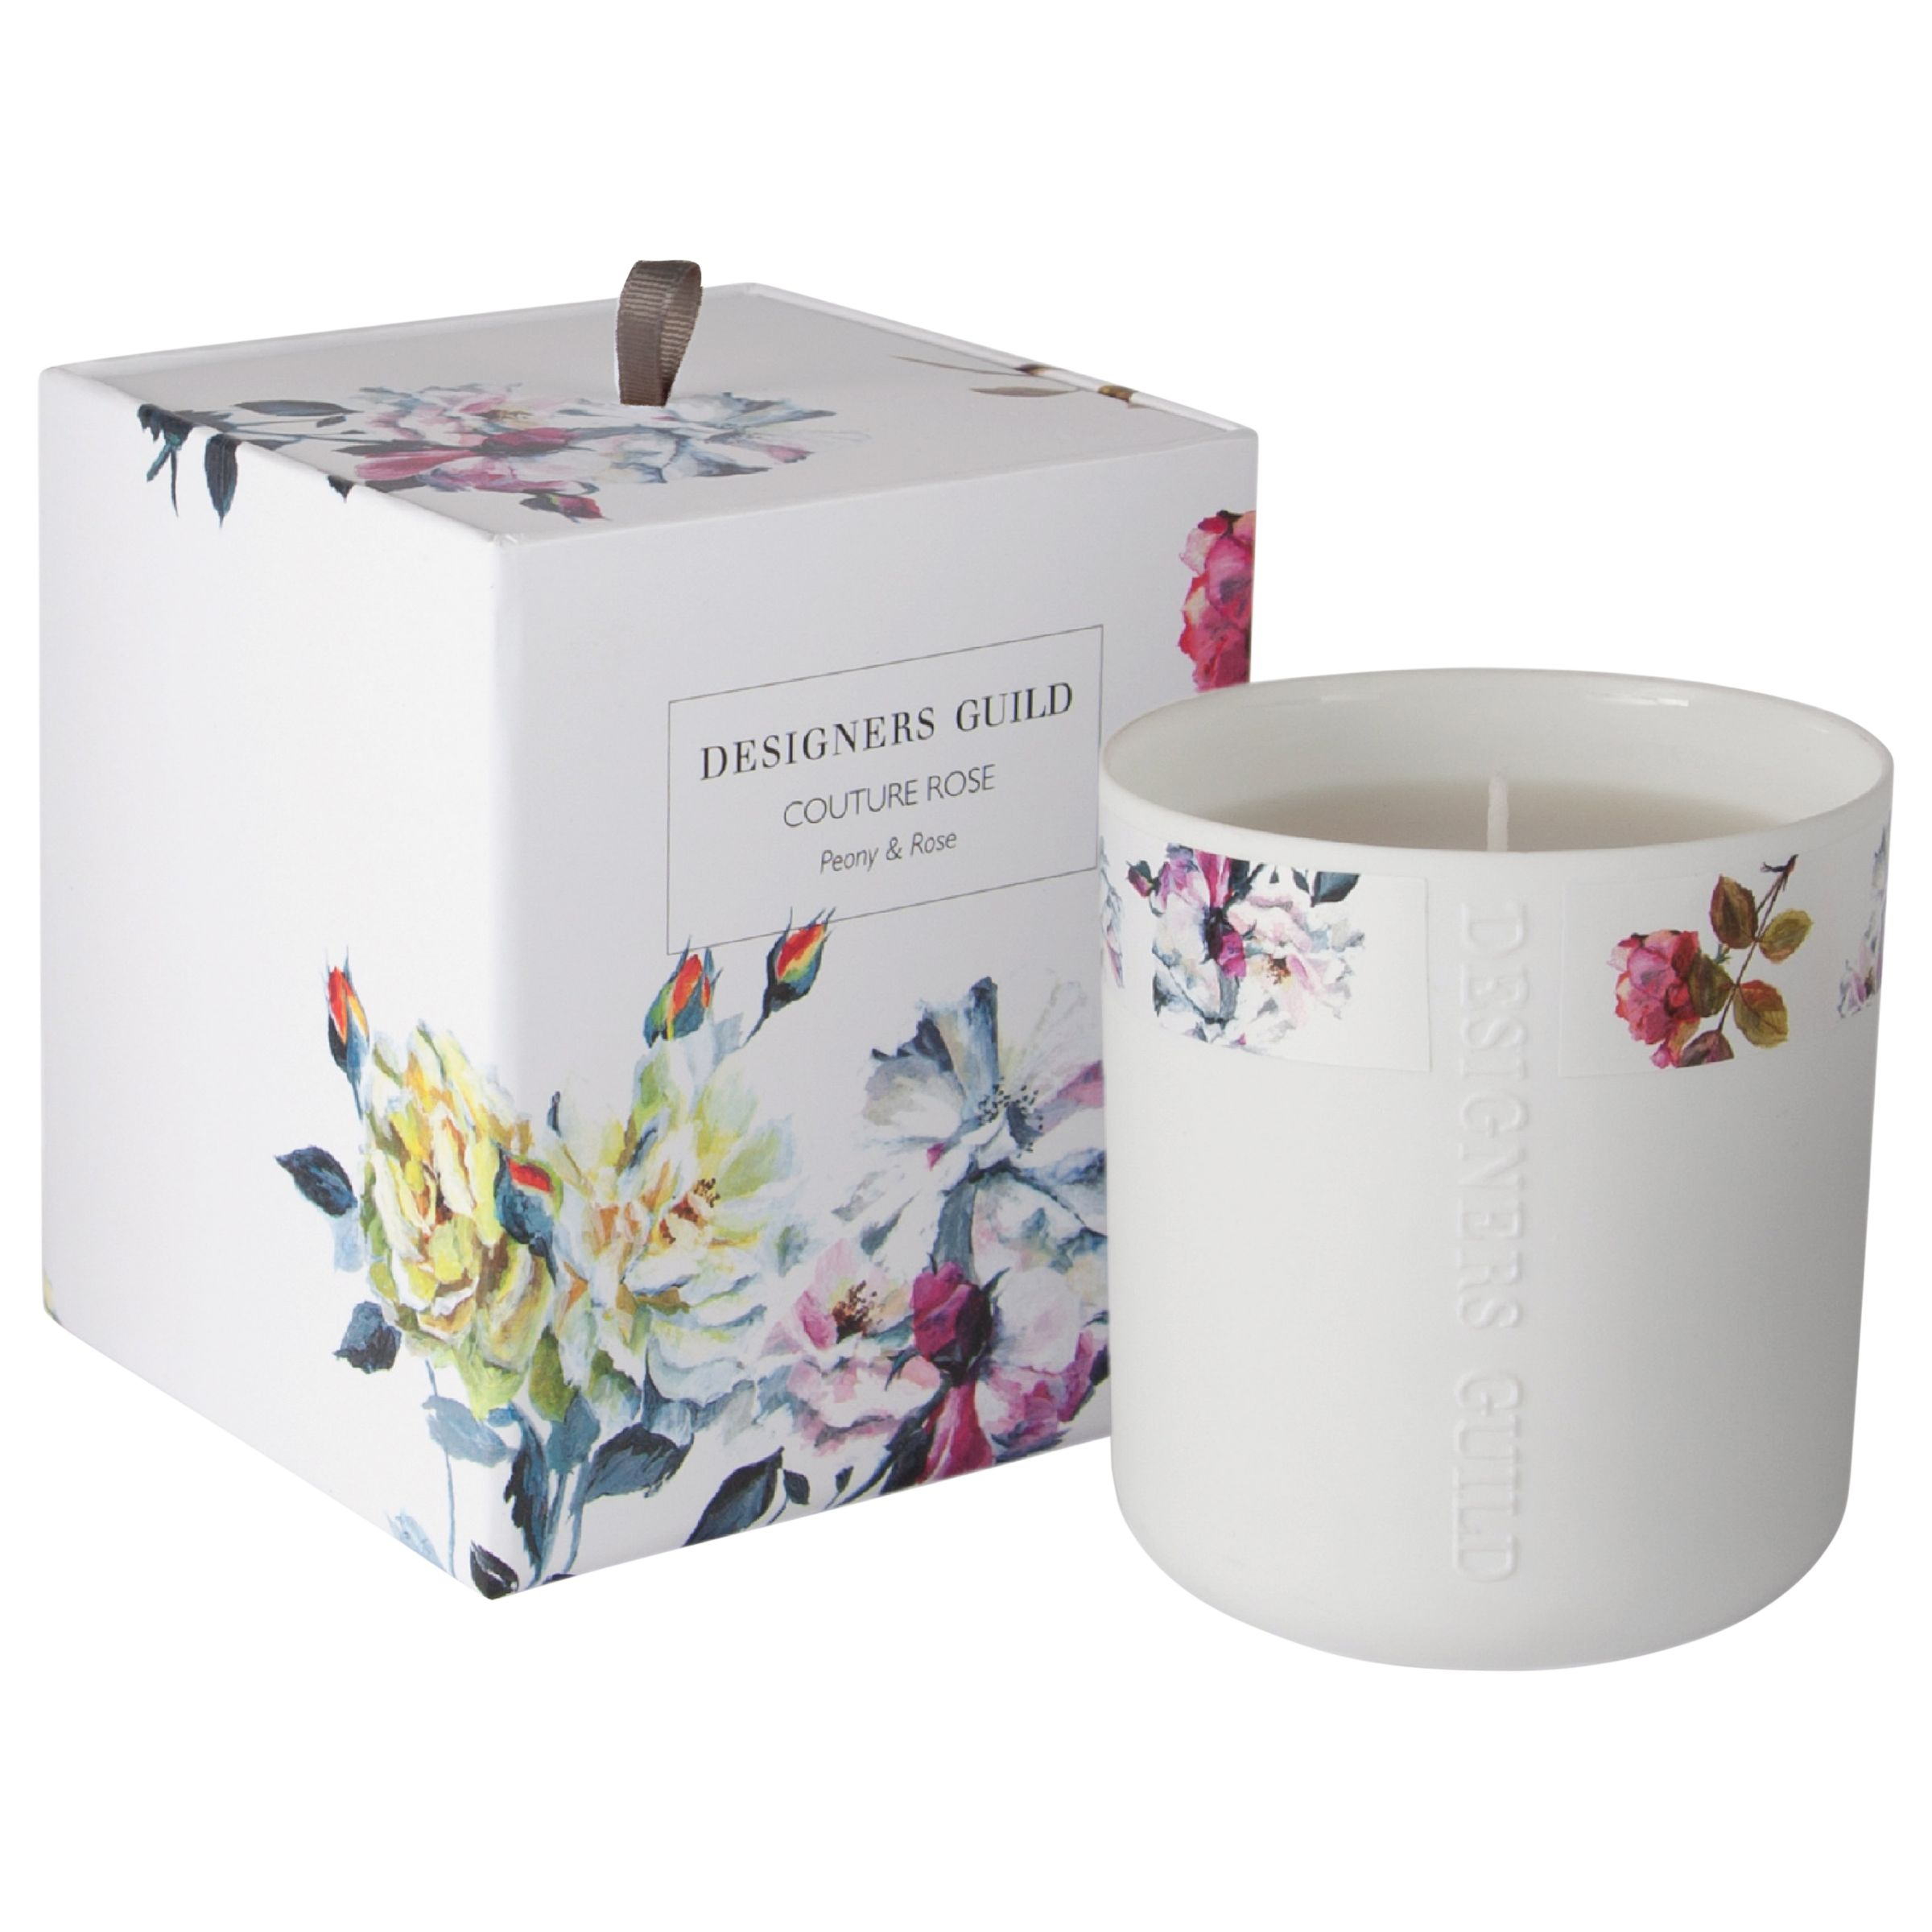 Designers Guild Designers Guild Couture Rose Scented Candle